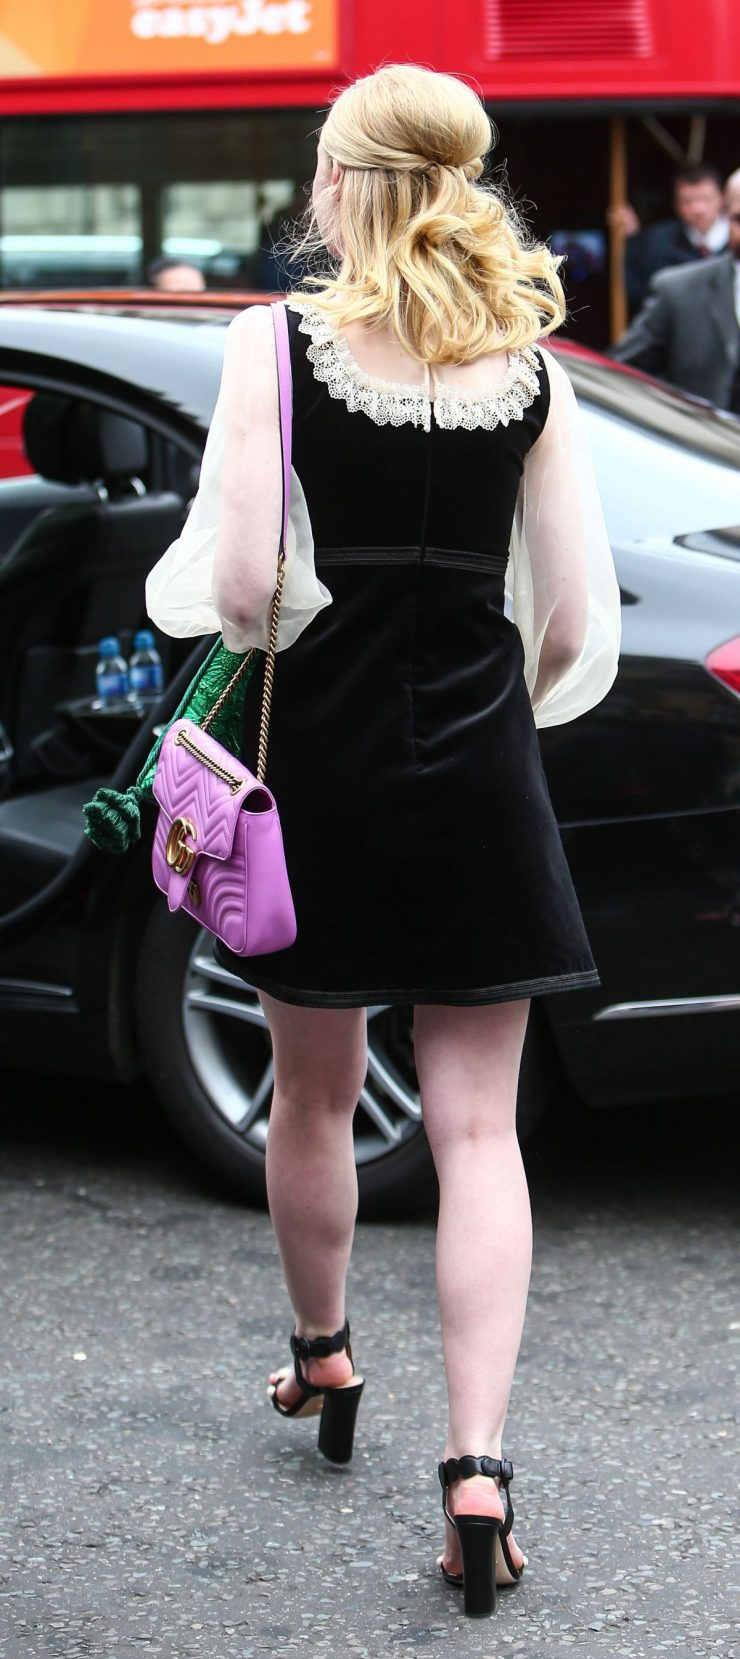 elle-fanning-at-2017-gucci-cruise-fashion-show-in-london-06-02-2016_9